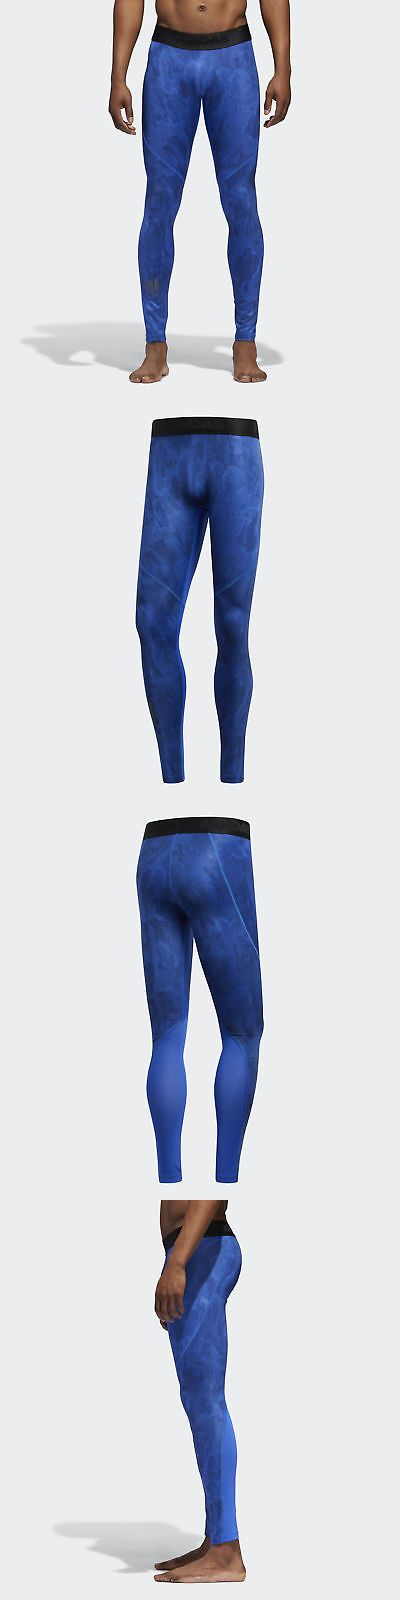 46f16ef016 Compression and Base Layers 179825: Adidas Alphaskin Sport Supreme Speed  Long Tights Men S -> BUY IT NOW ONLY: $19.99 on eBay!